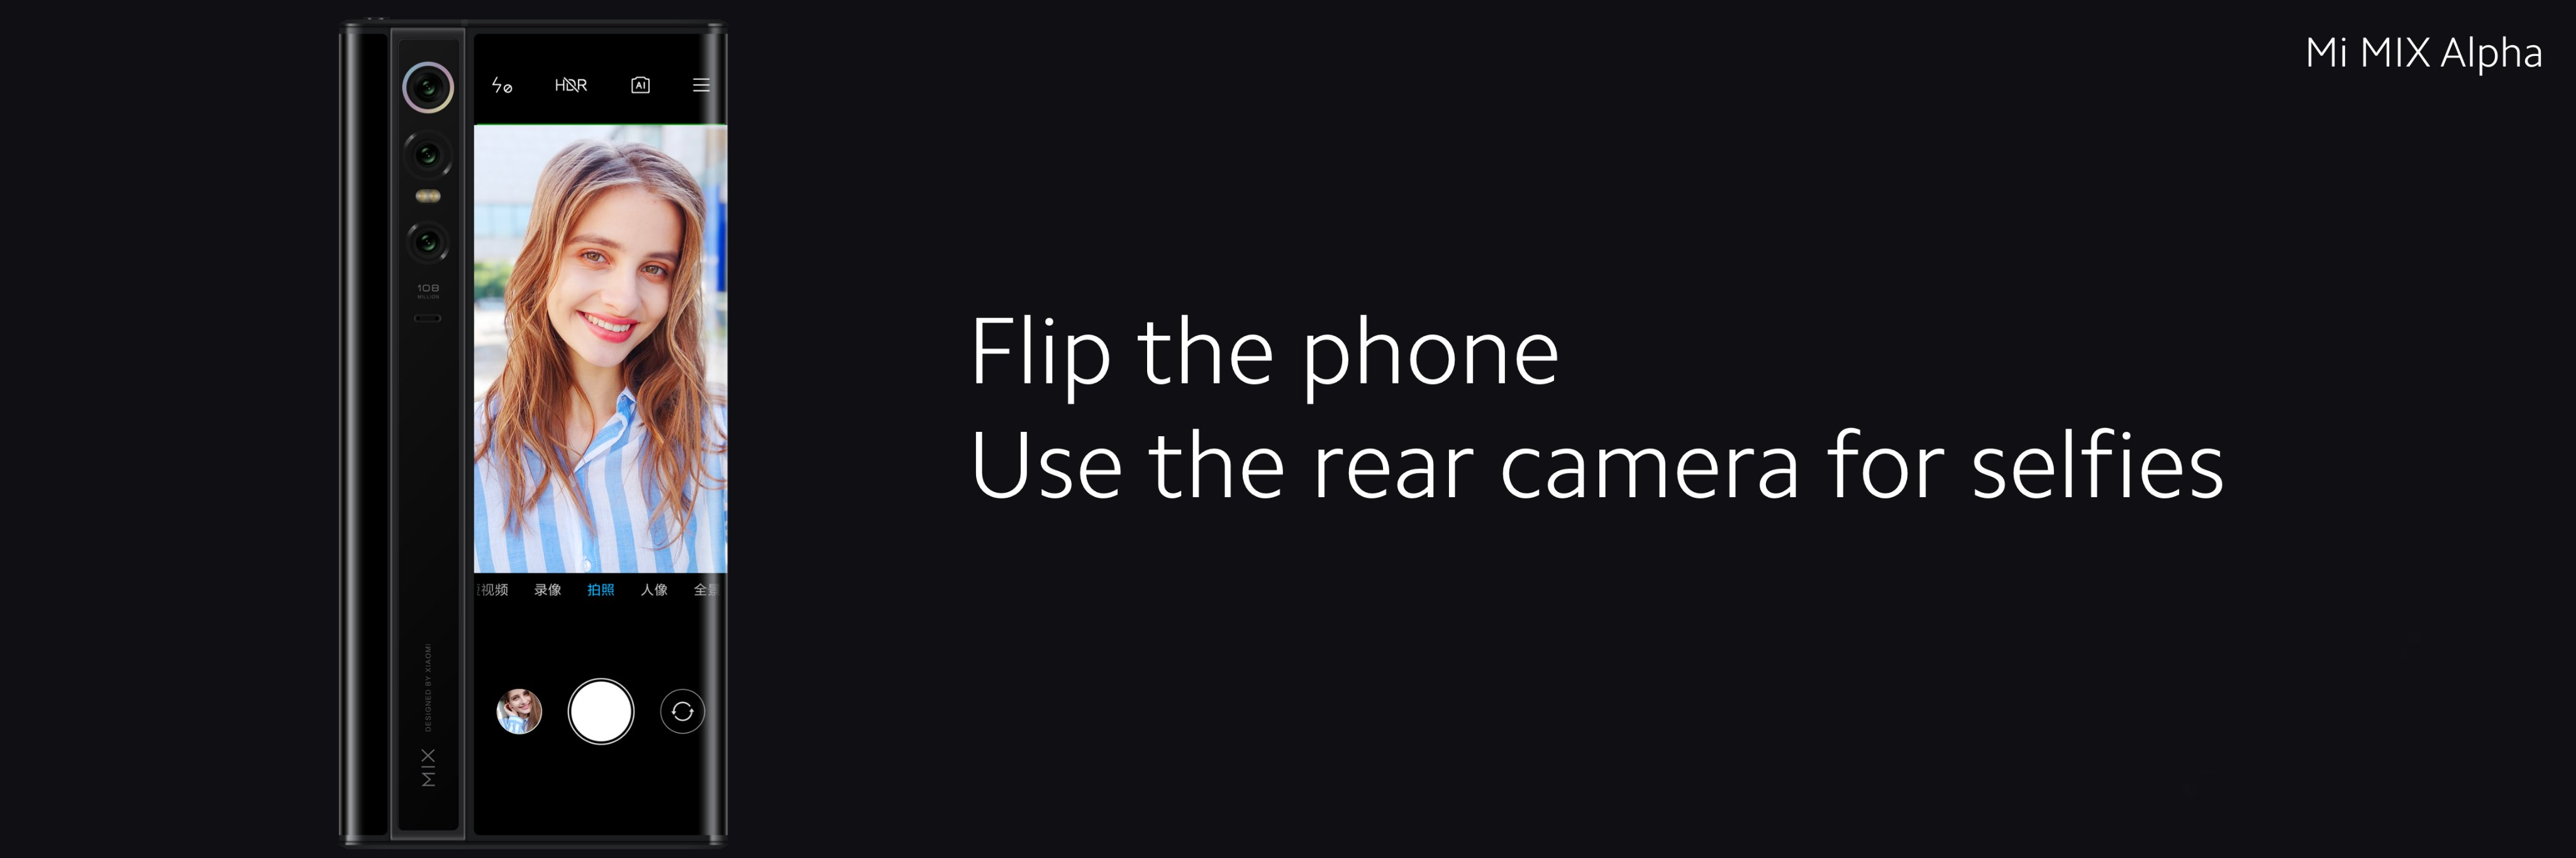 Mi MIX Alpha has no selfie camera just flip the phone to use the rear camera to take selfies.